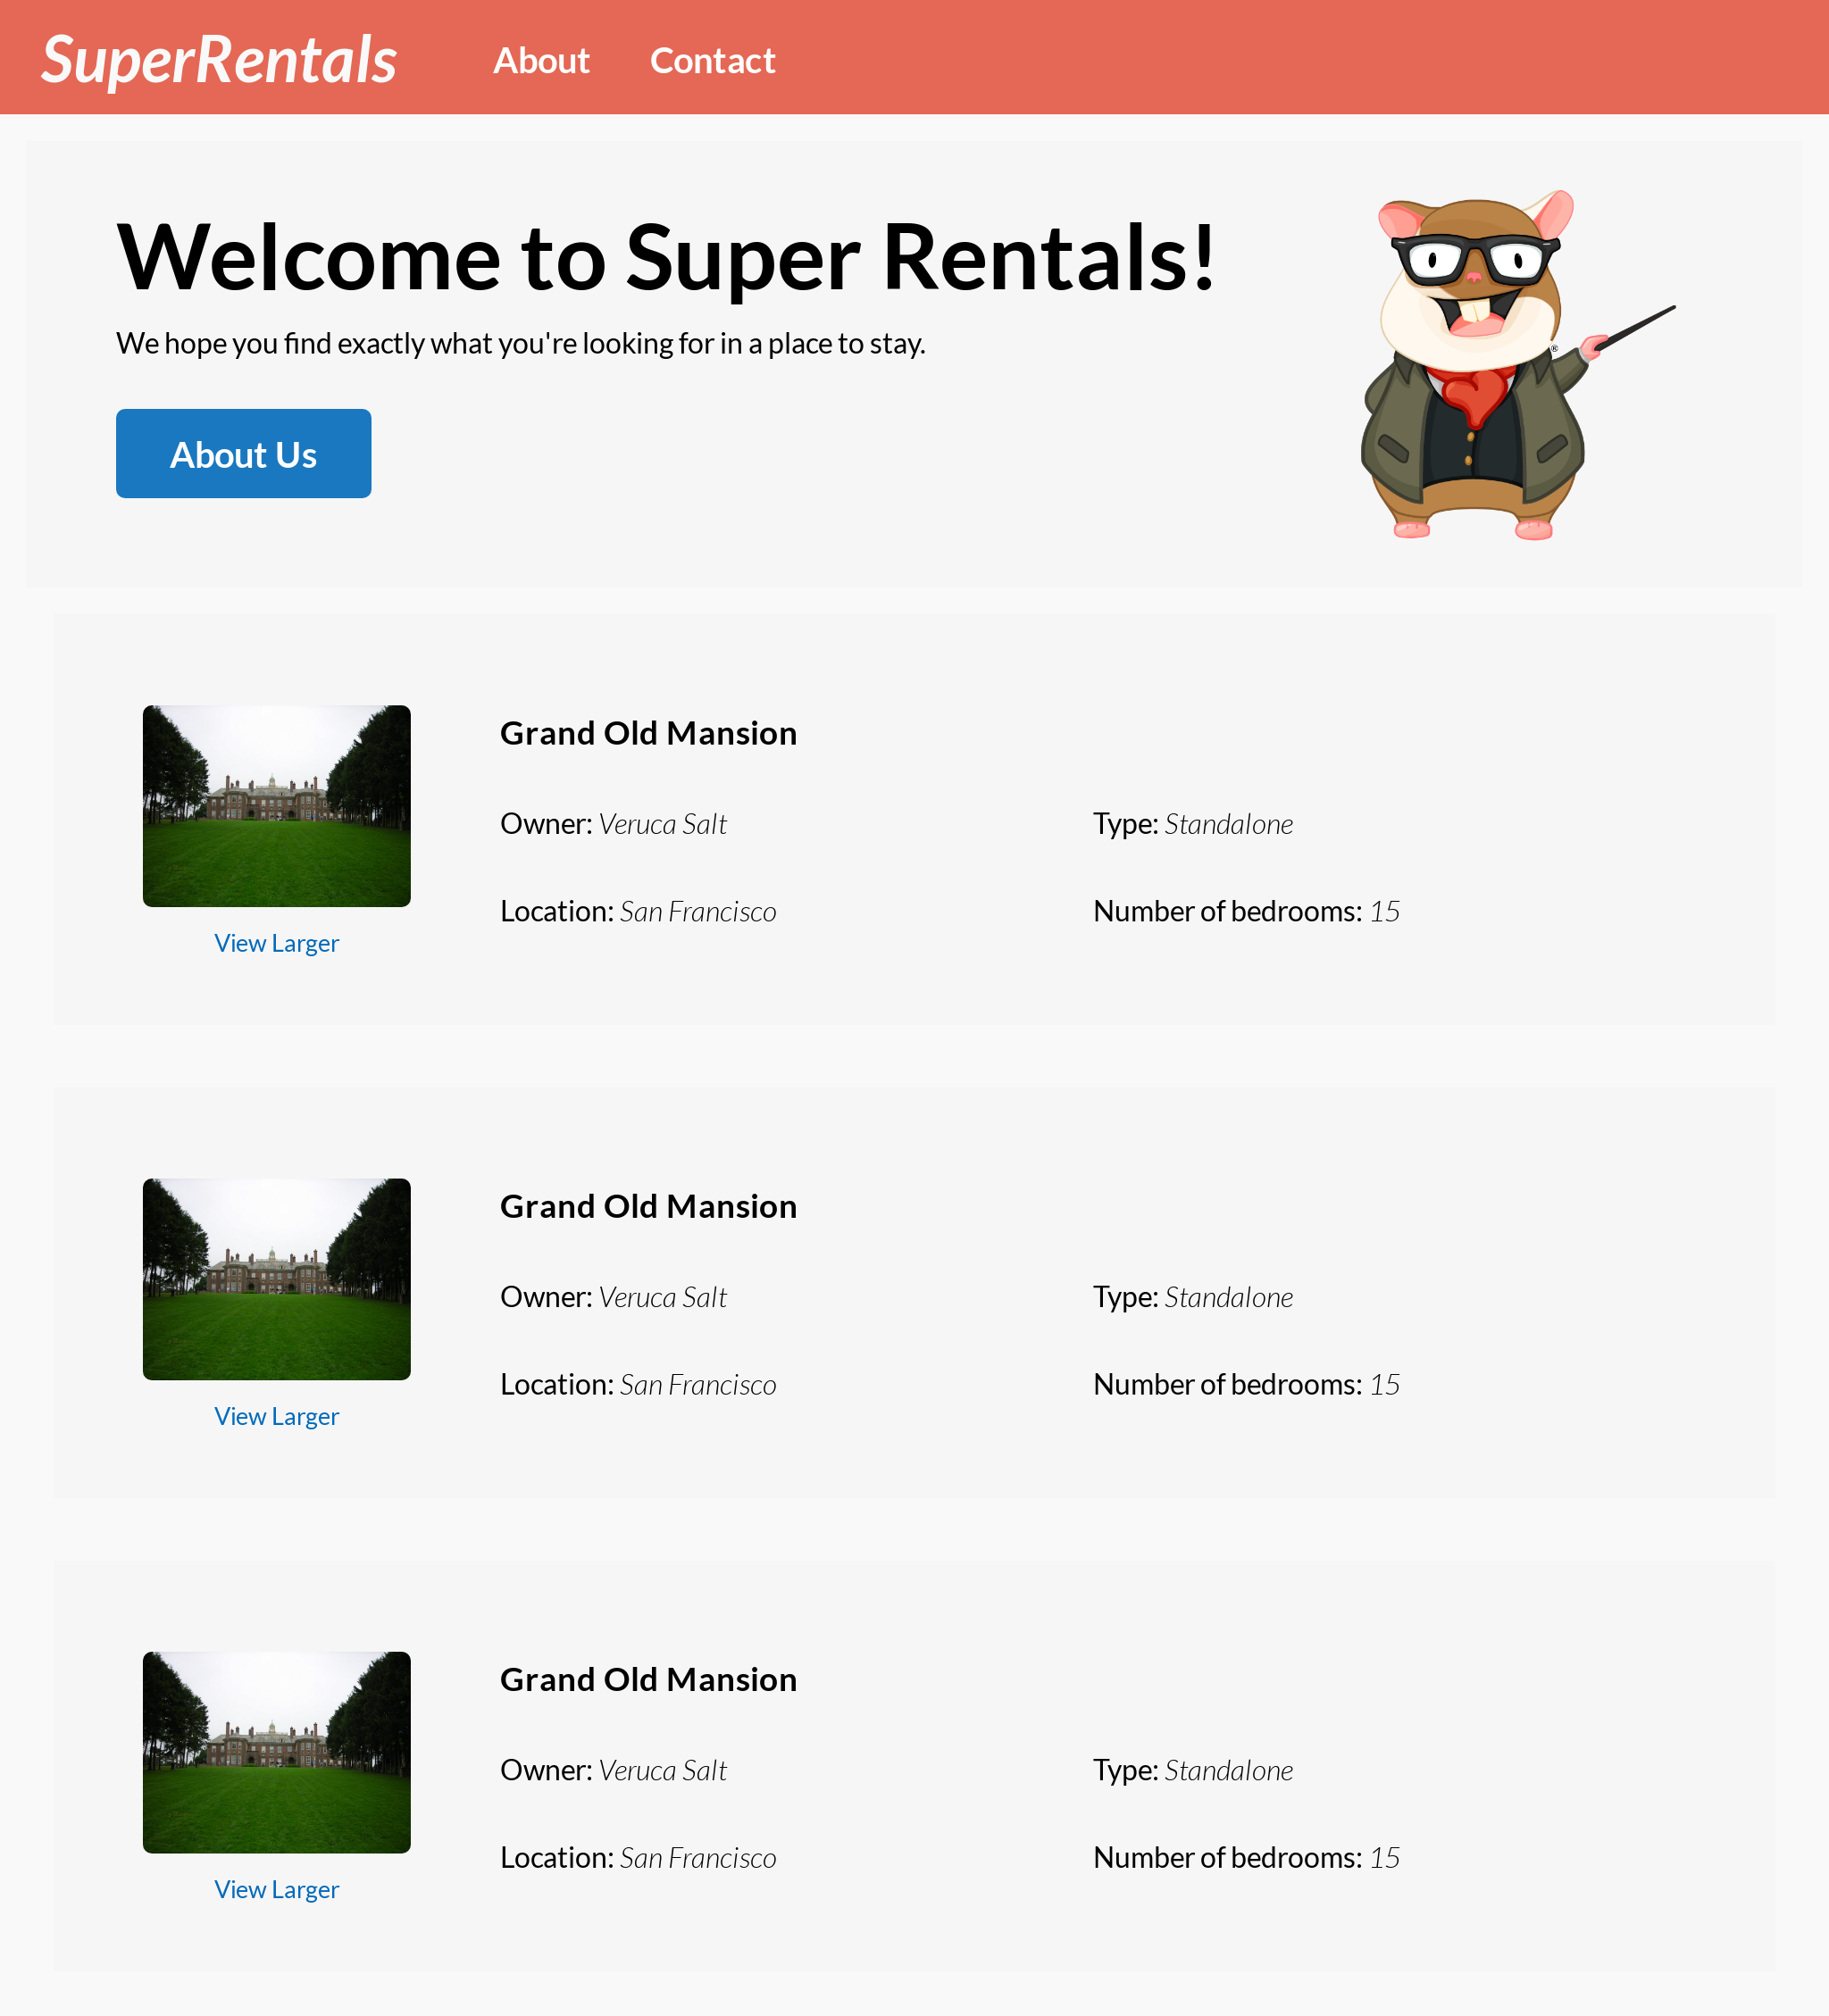 The Super Rentals app by the end of the chapter (default image size)